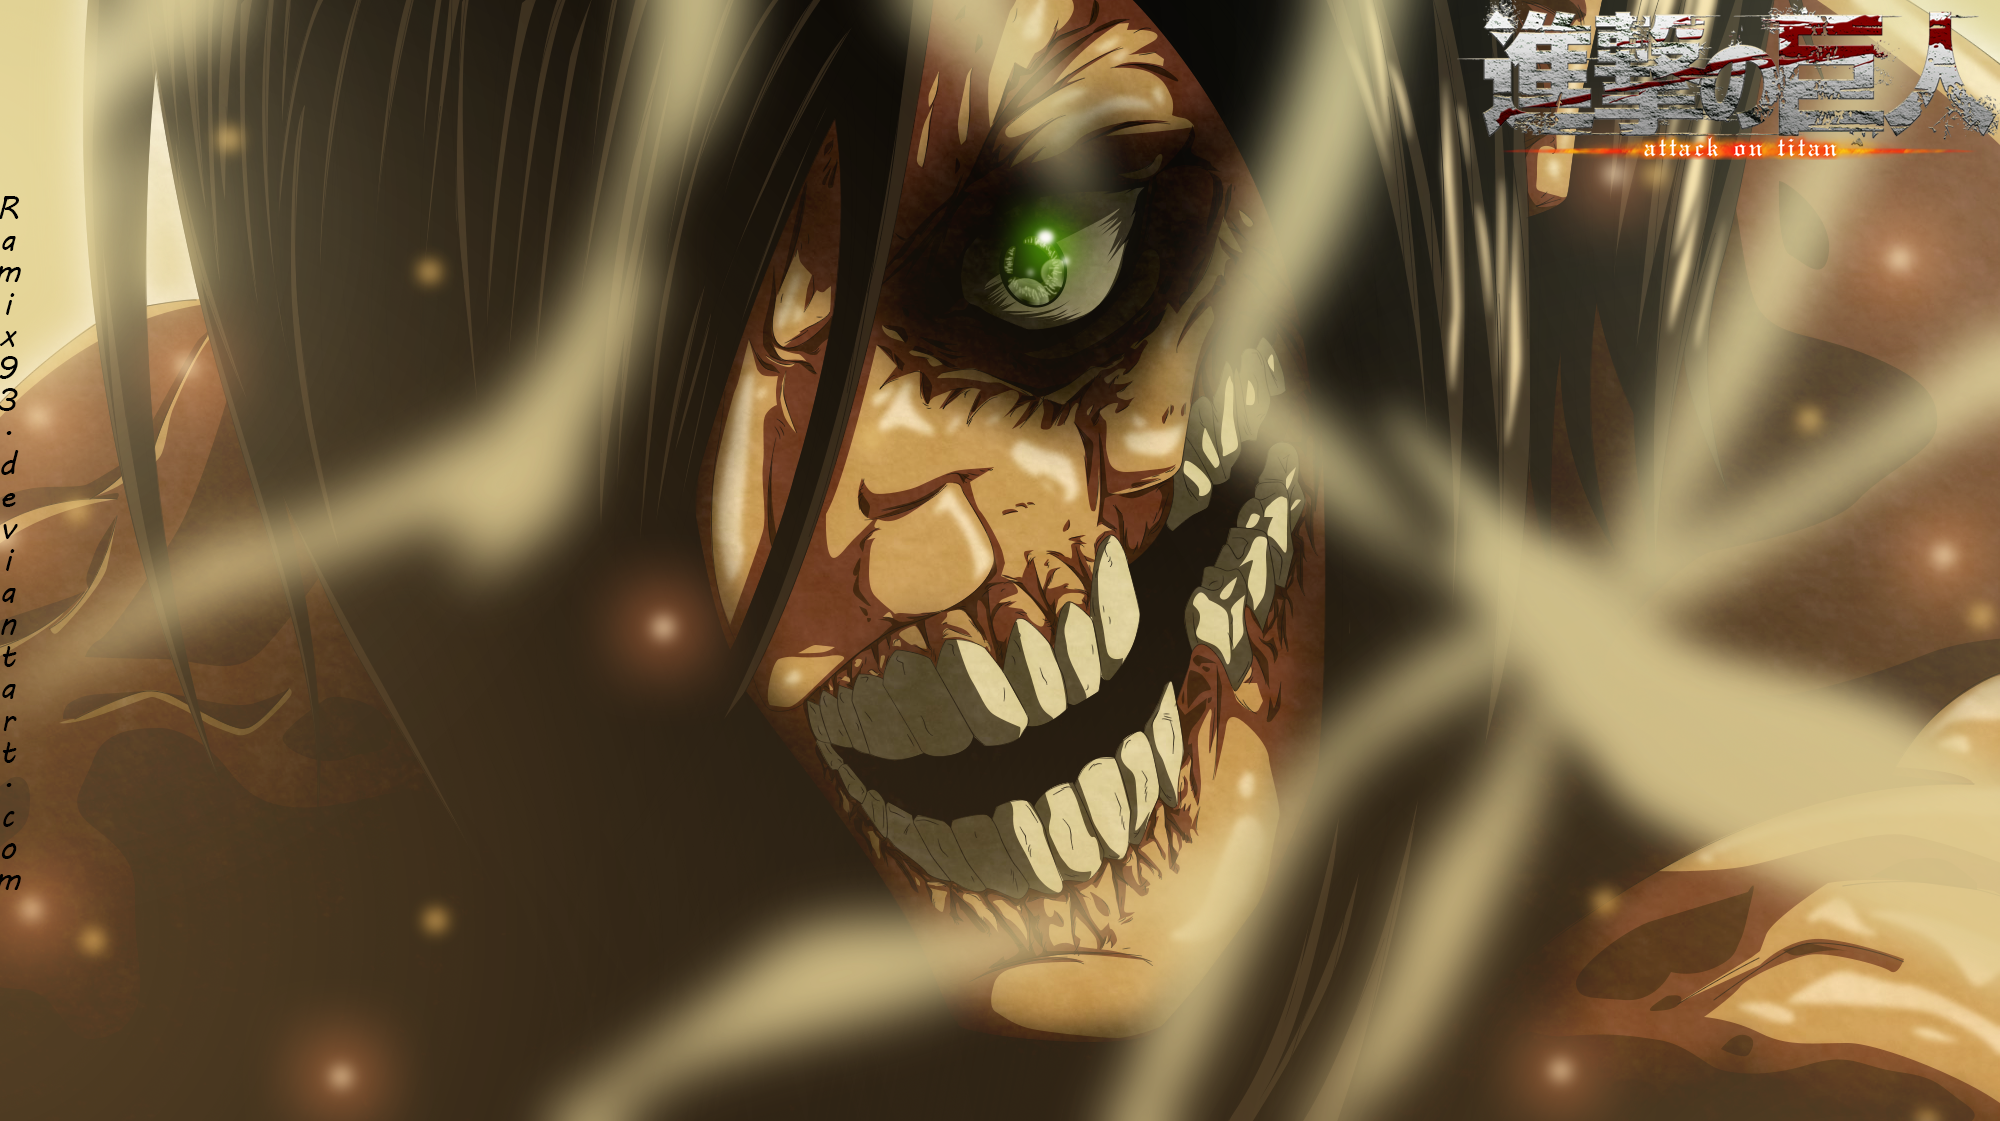 titans red shingeki no - photo #32